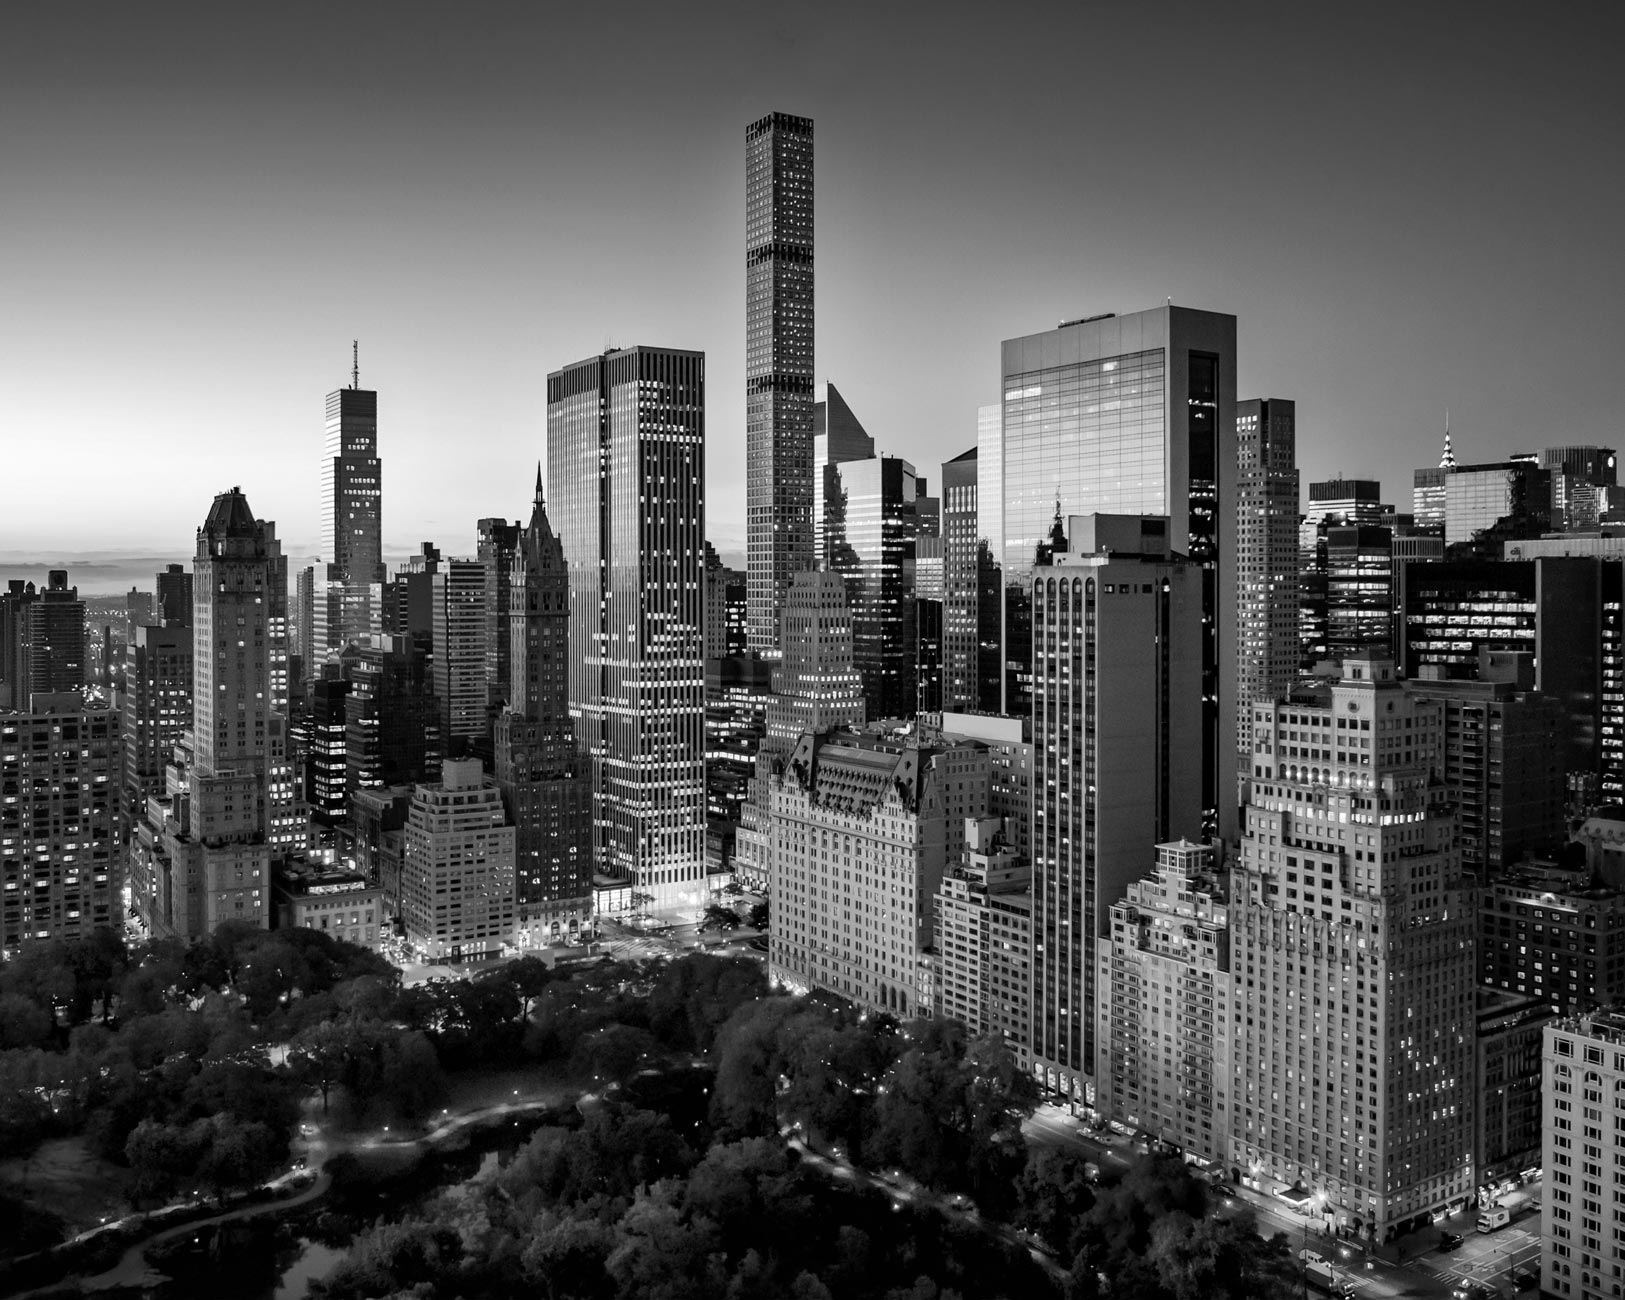 Black & White photo of New York city